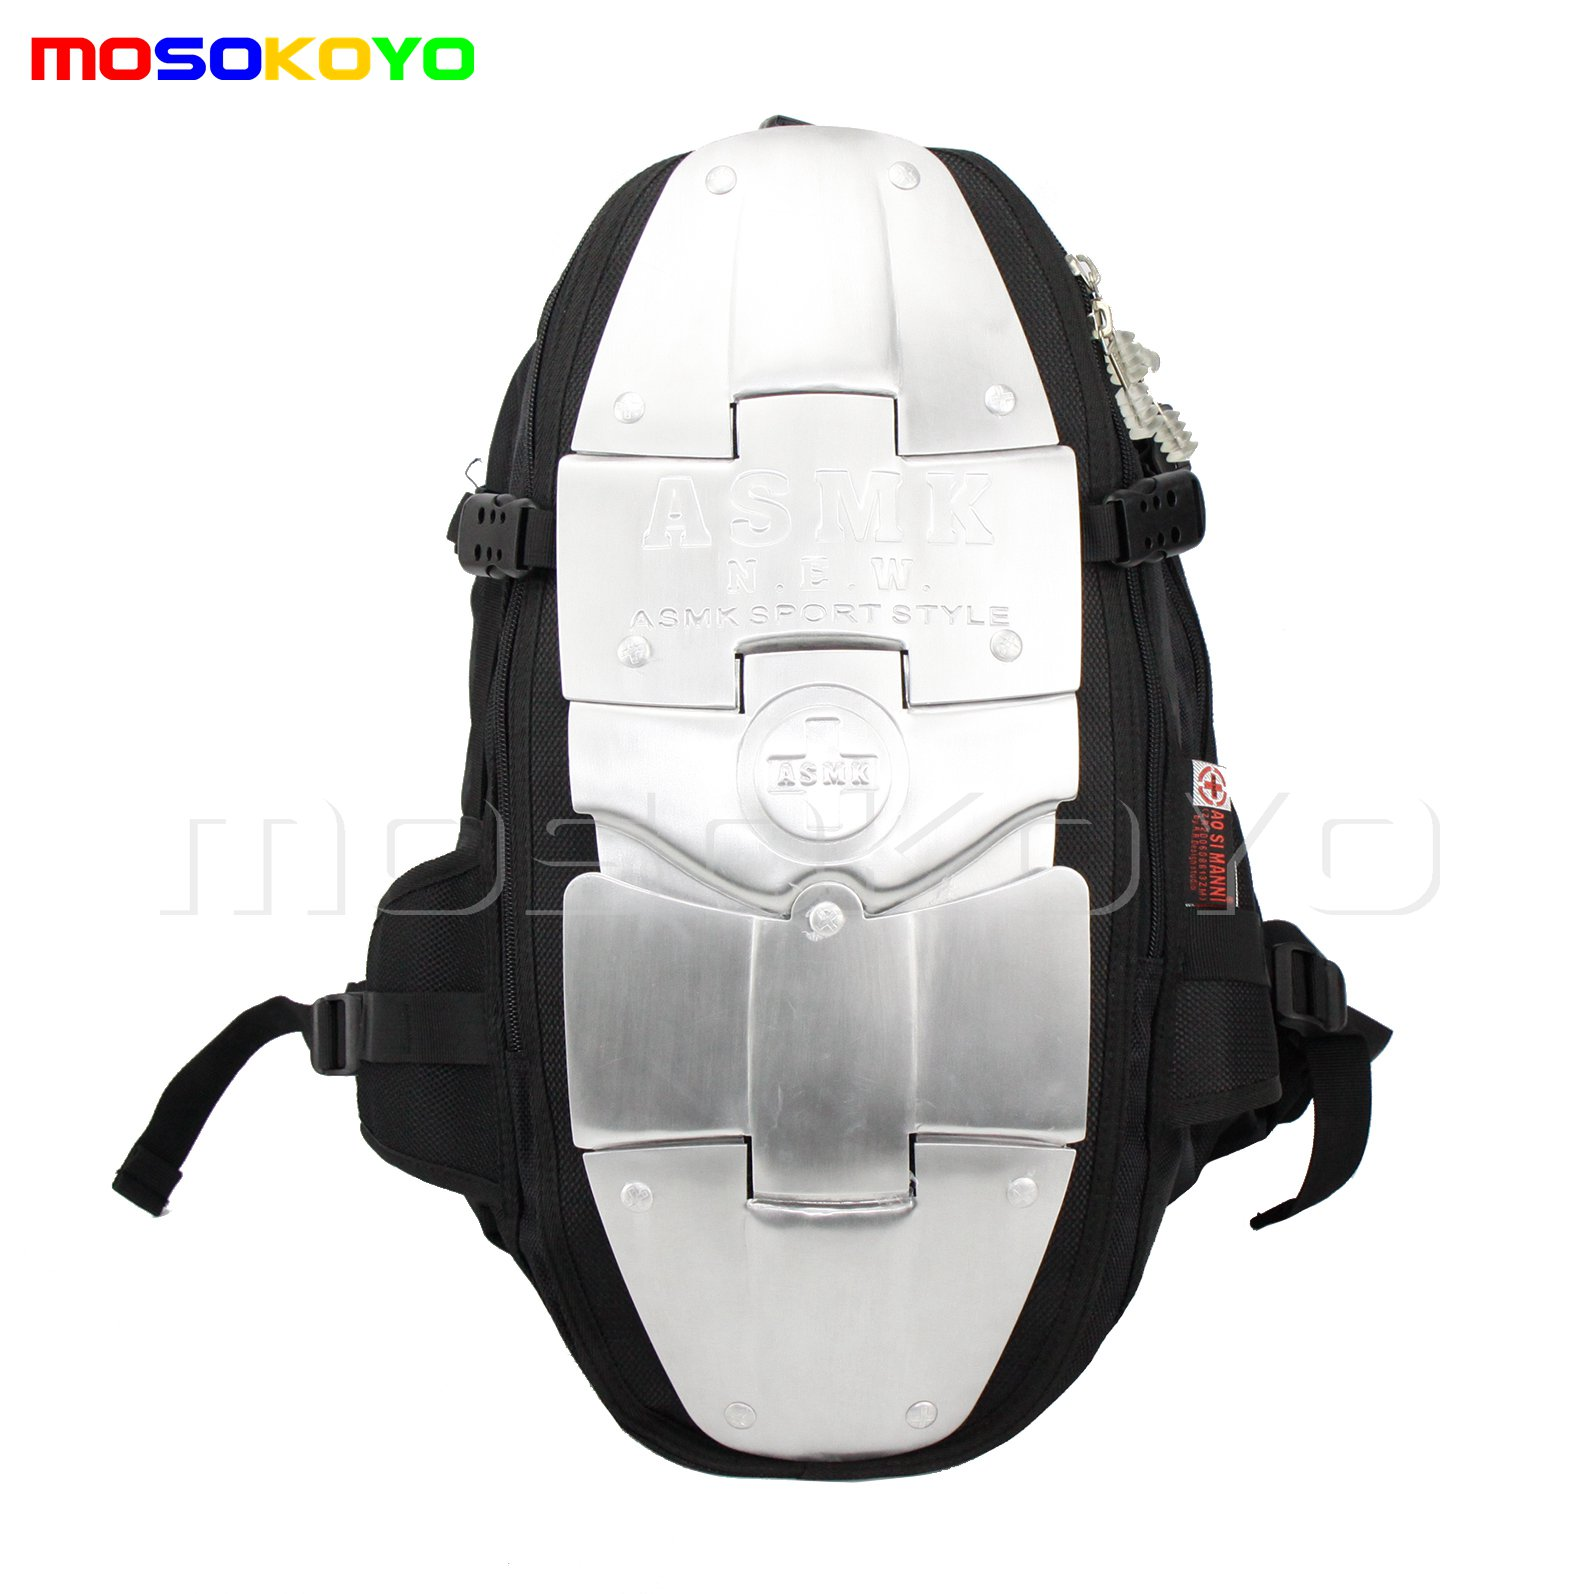 Aluminum Armor Spine Protector Motorcycle Bike Riding Gear Large travel Bag Back